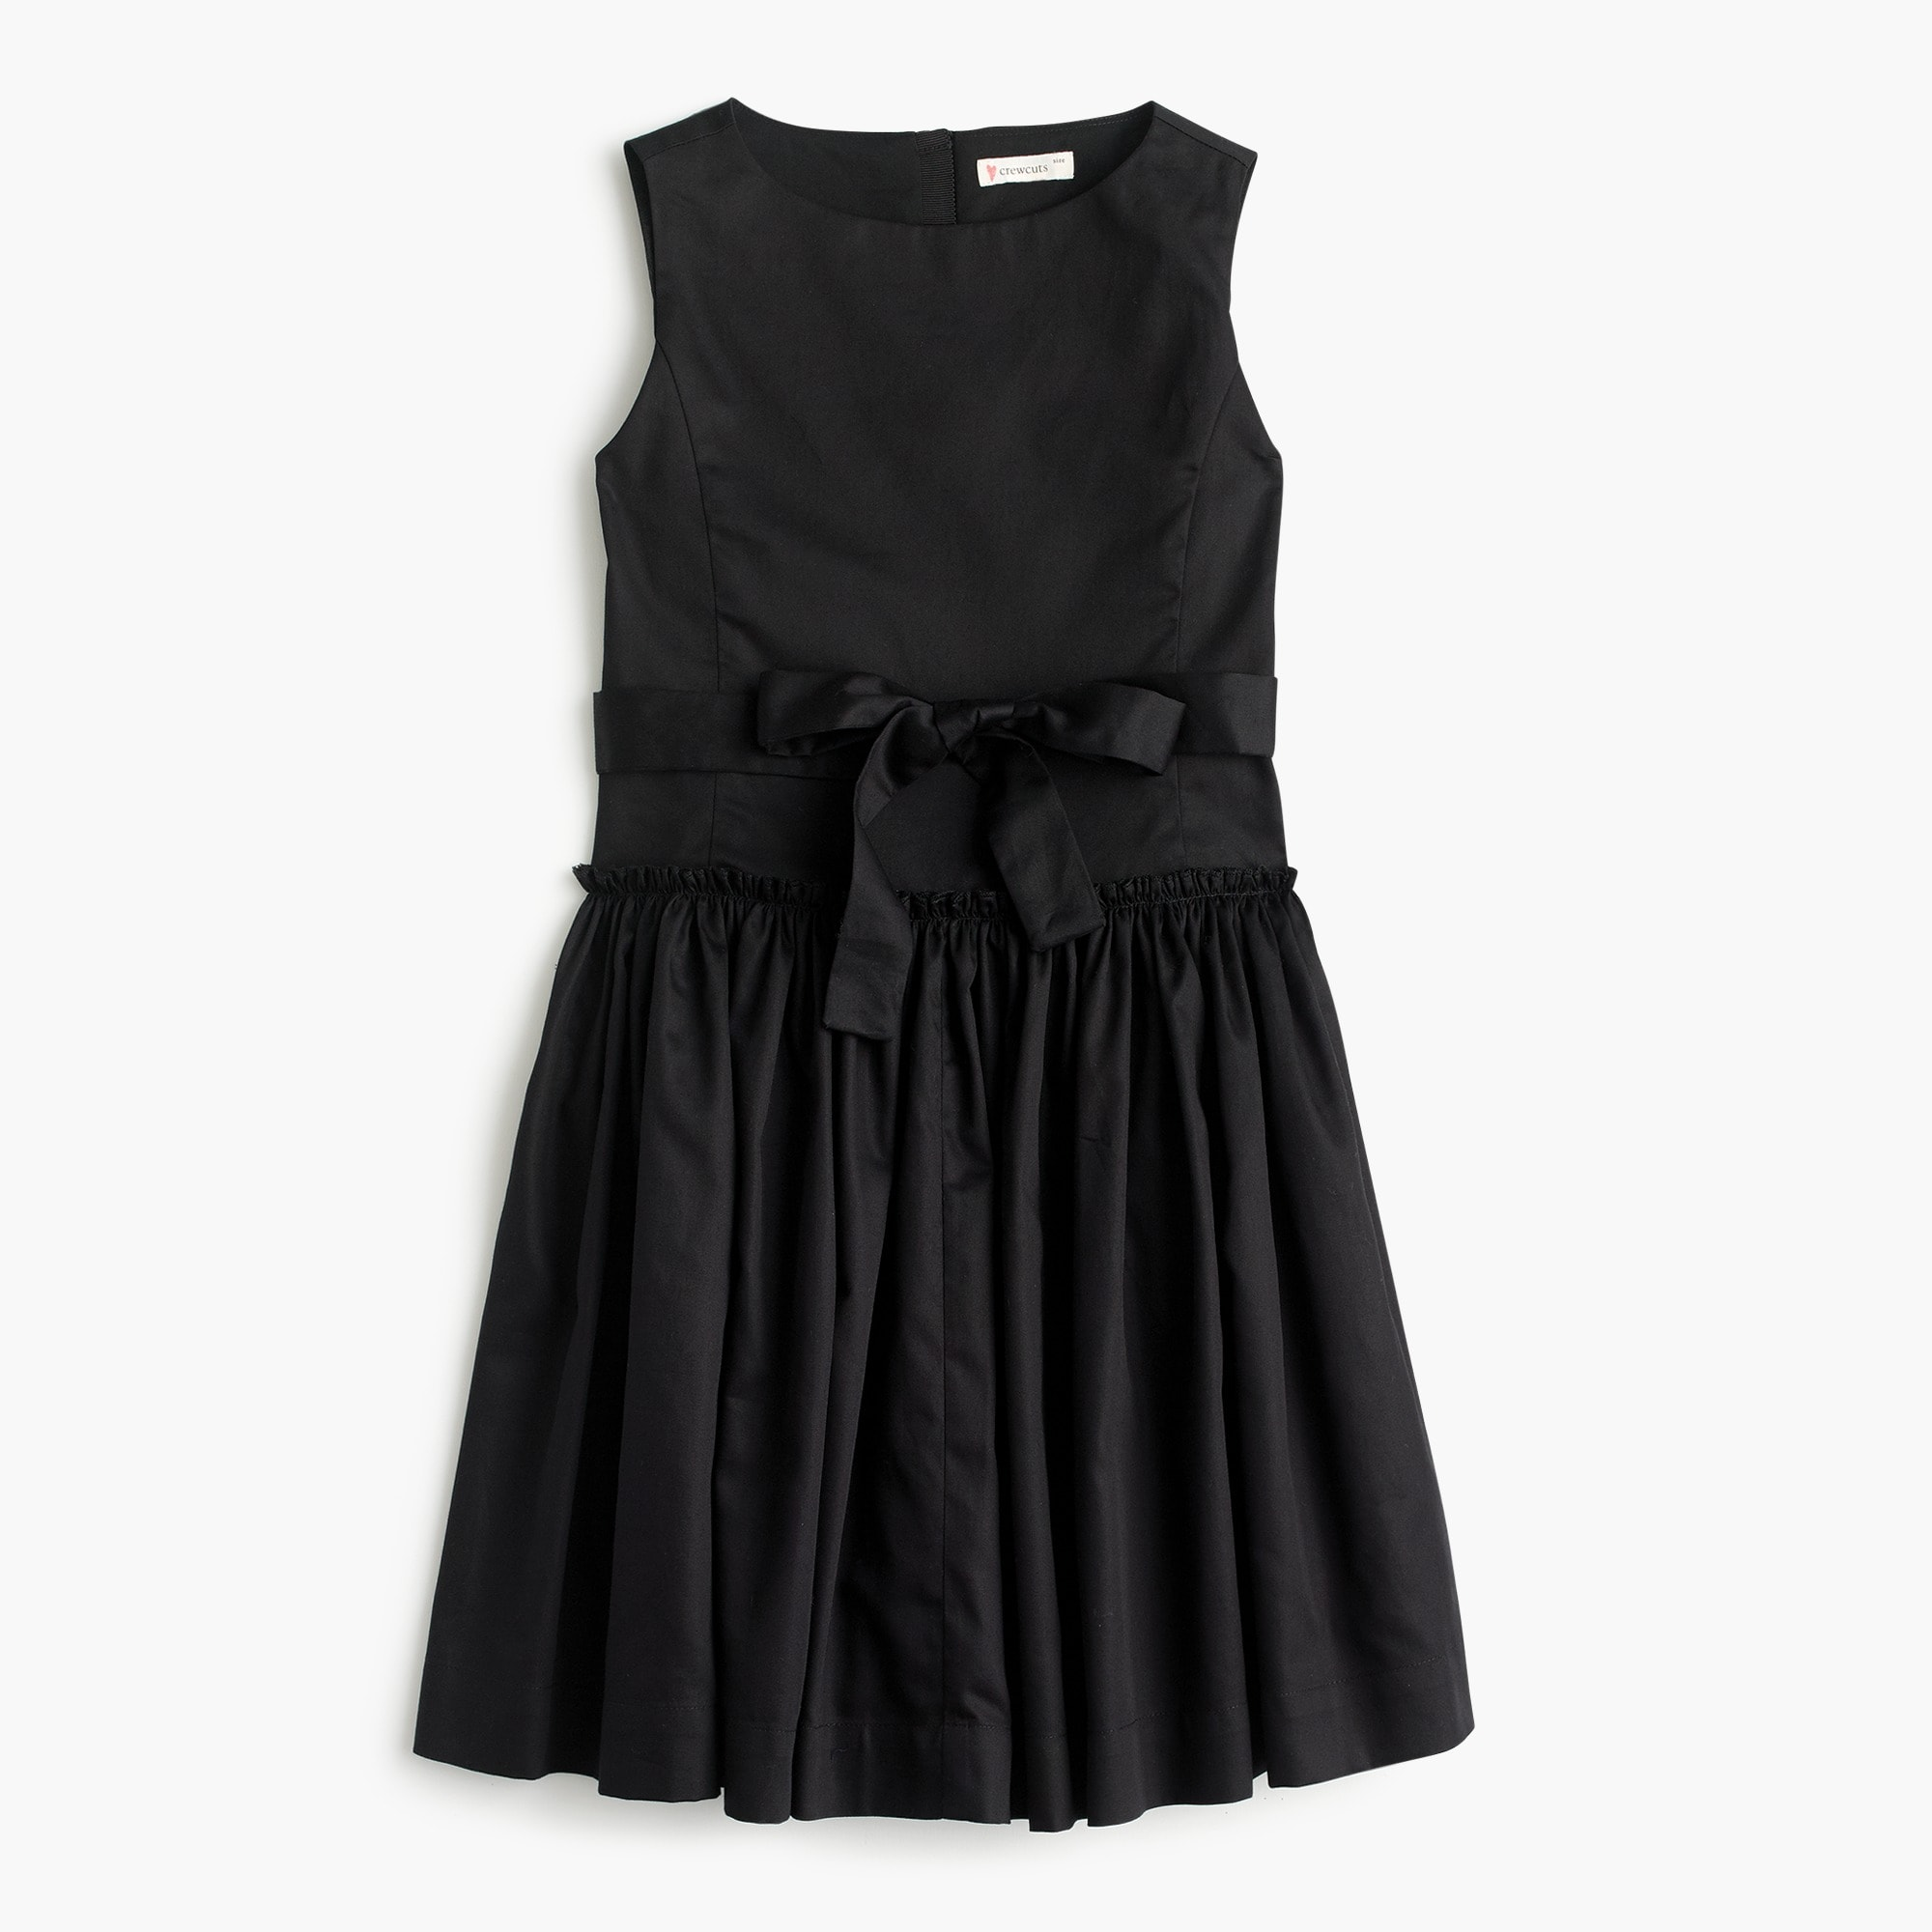 Girls' tie-waist dress girl dresses c